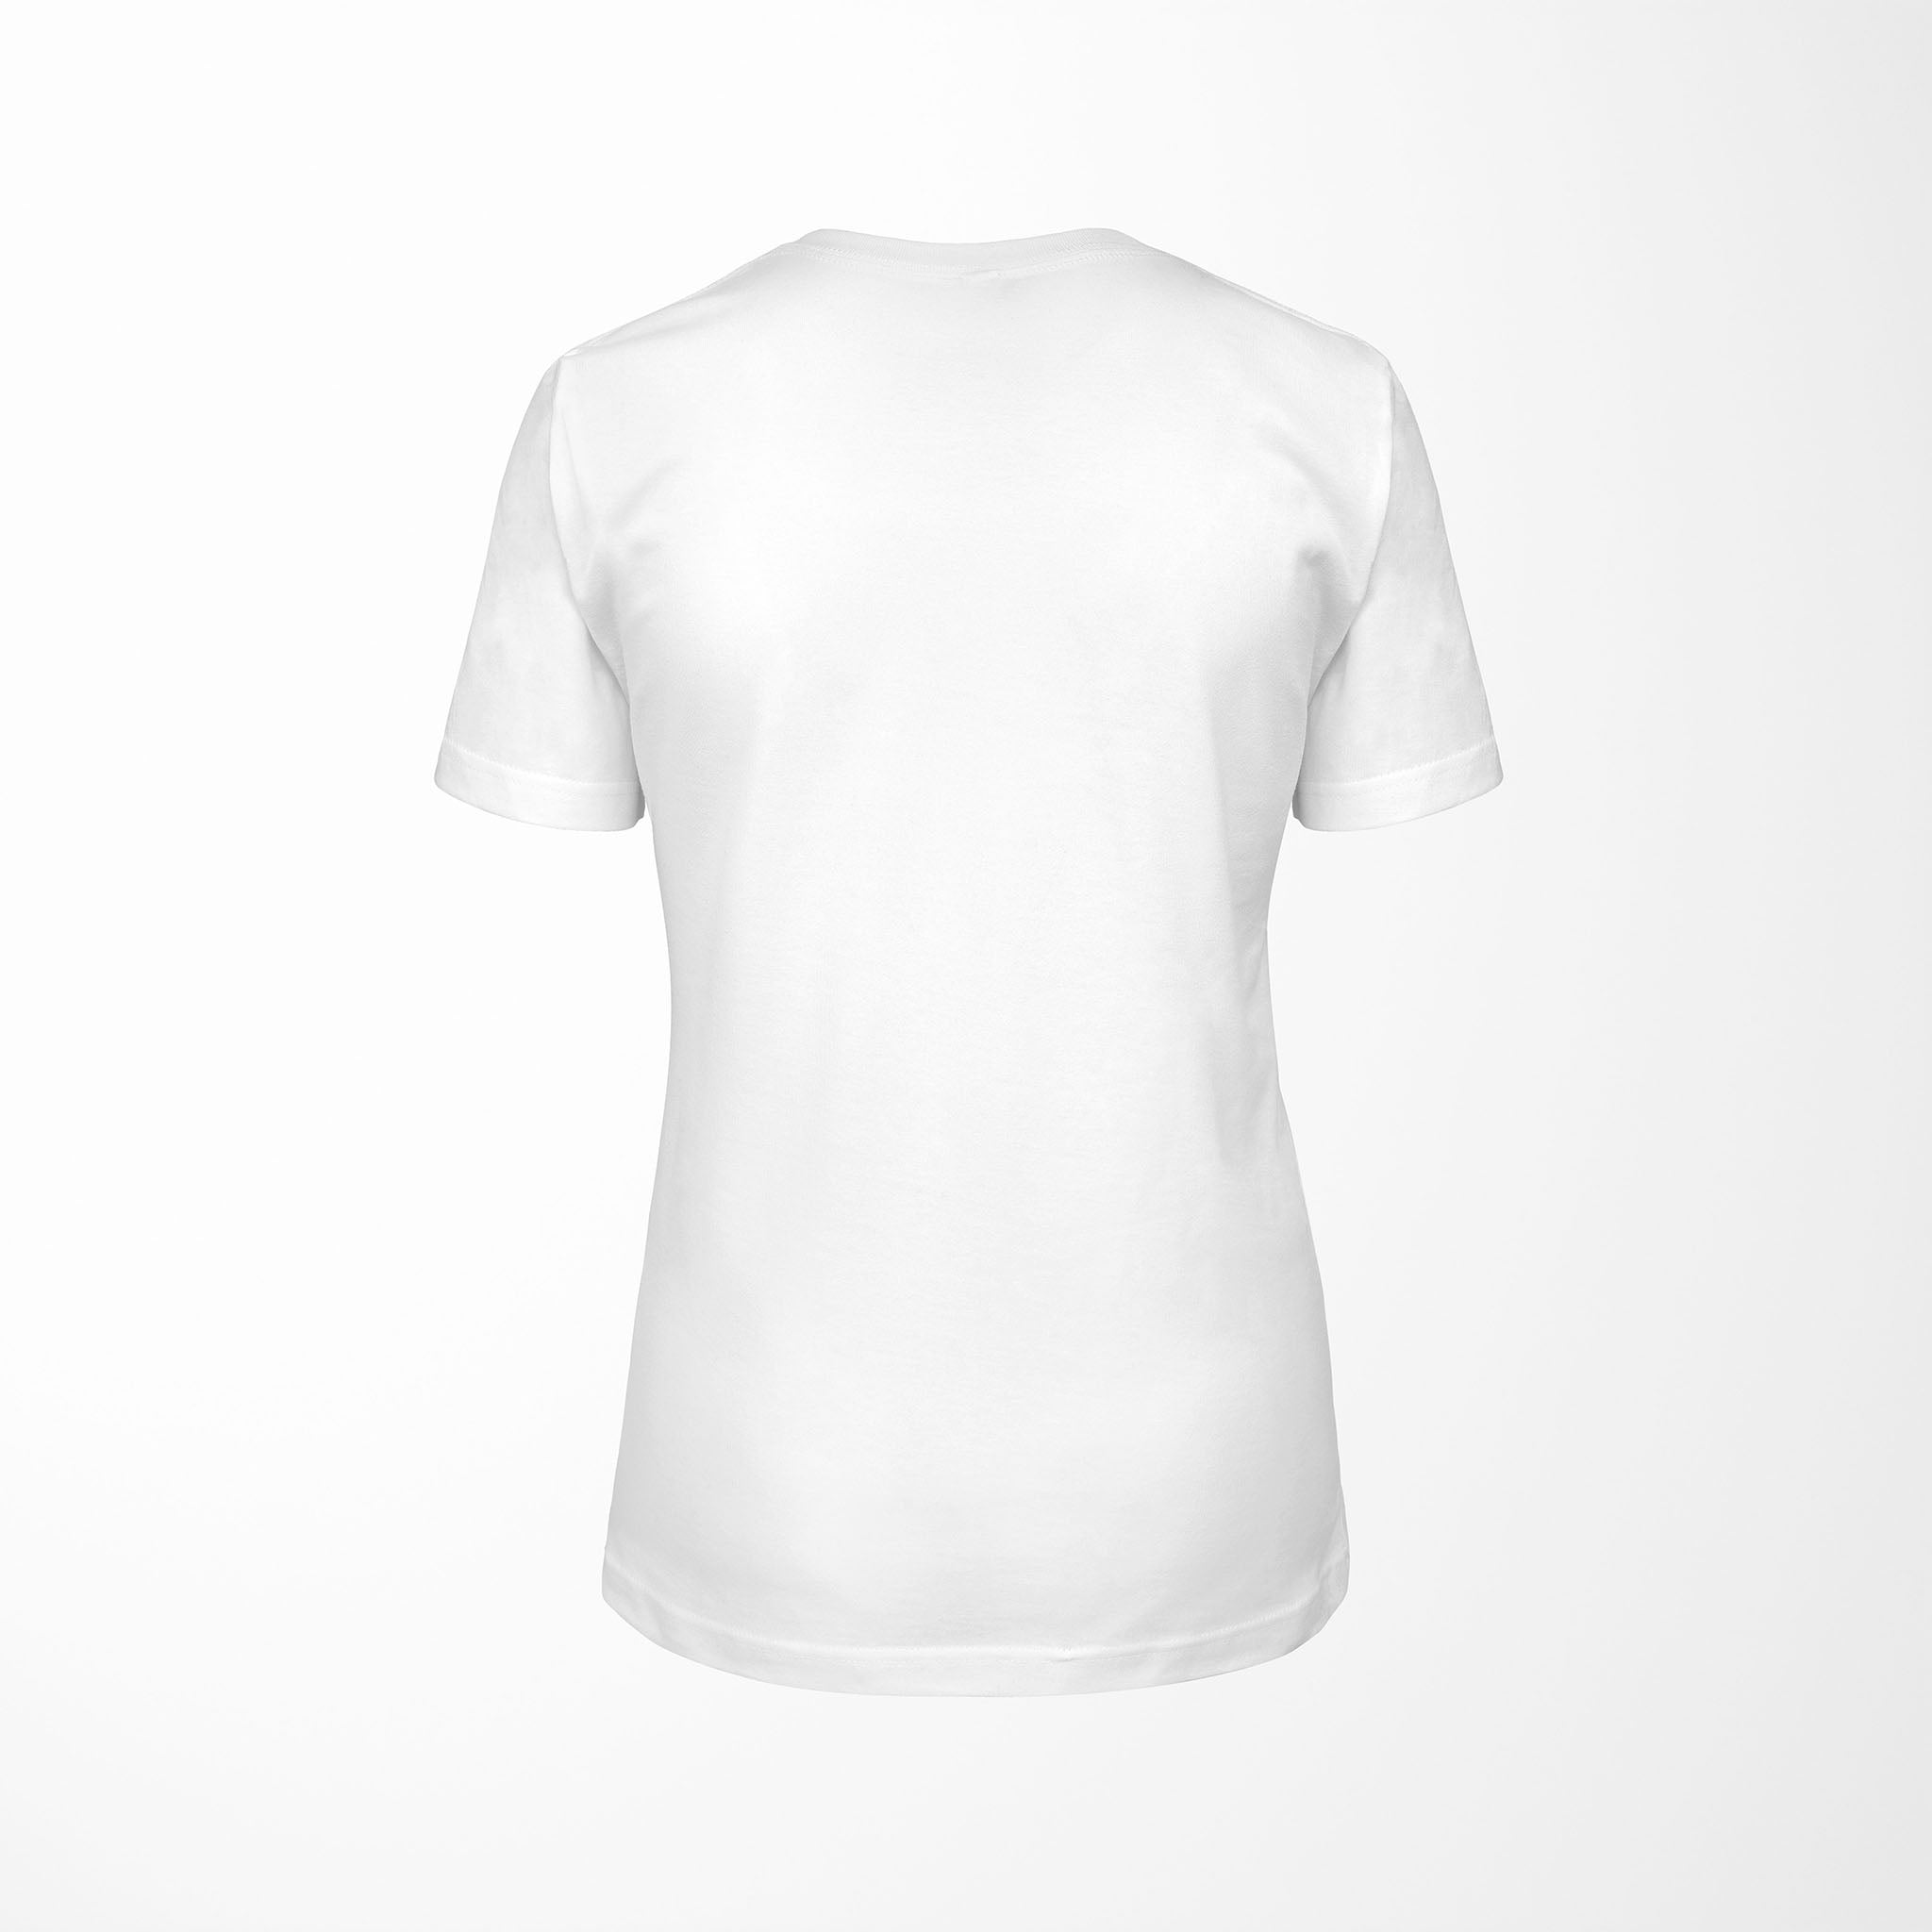 white relaxed fit women's t-shirt with explode print back